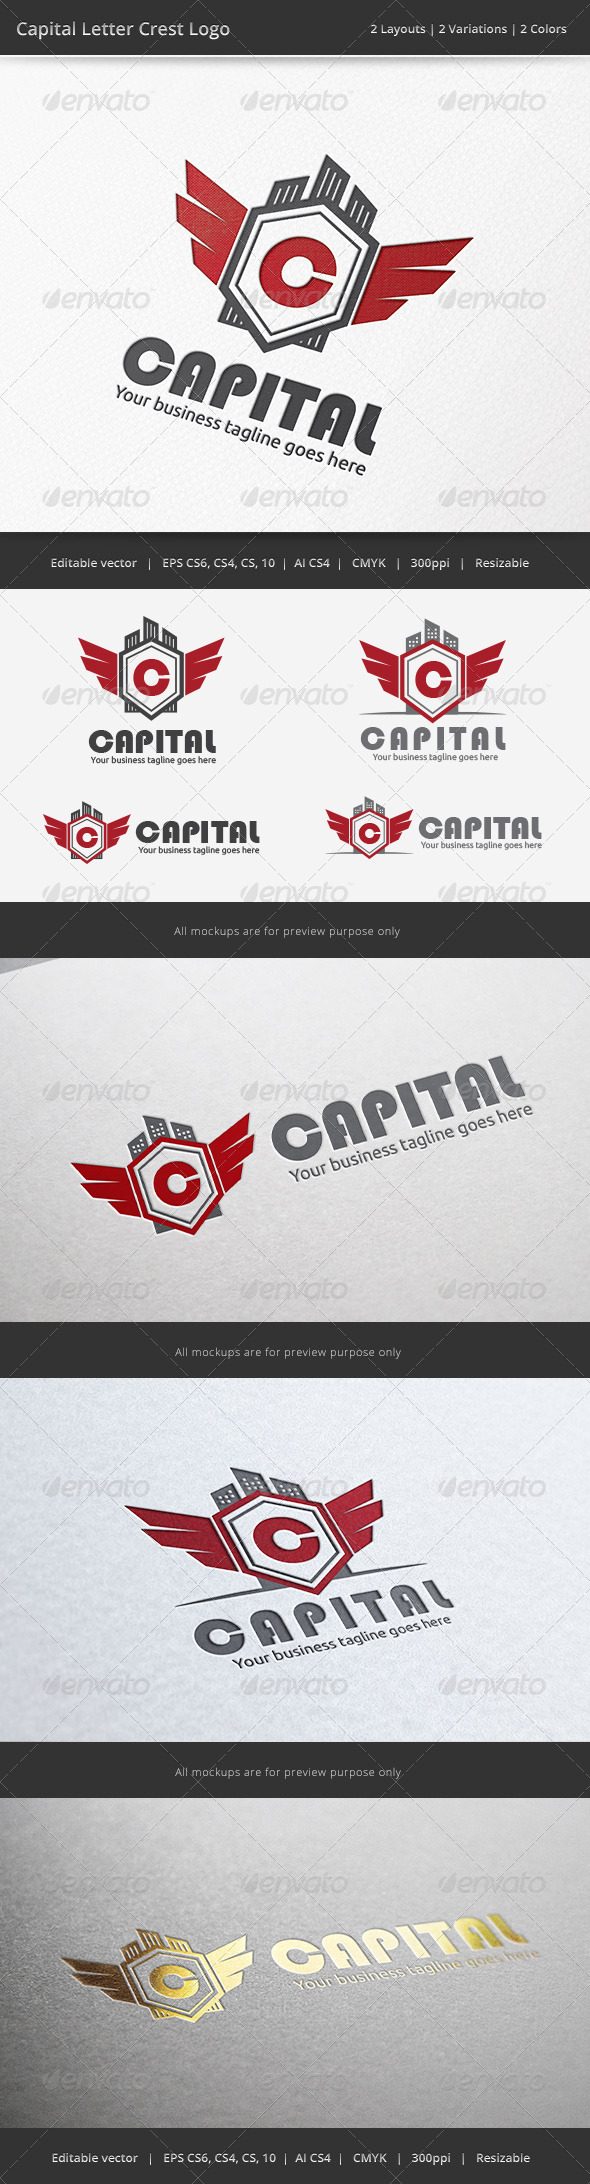 GraphicRiver Capital Letter Crest Logo 6750185